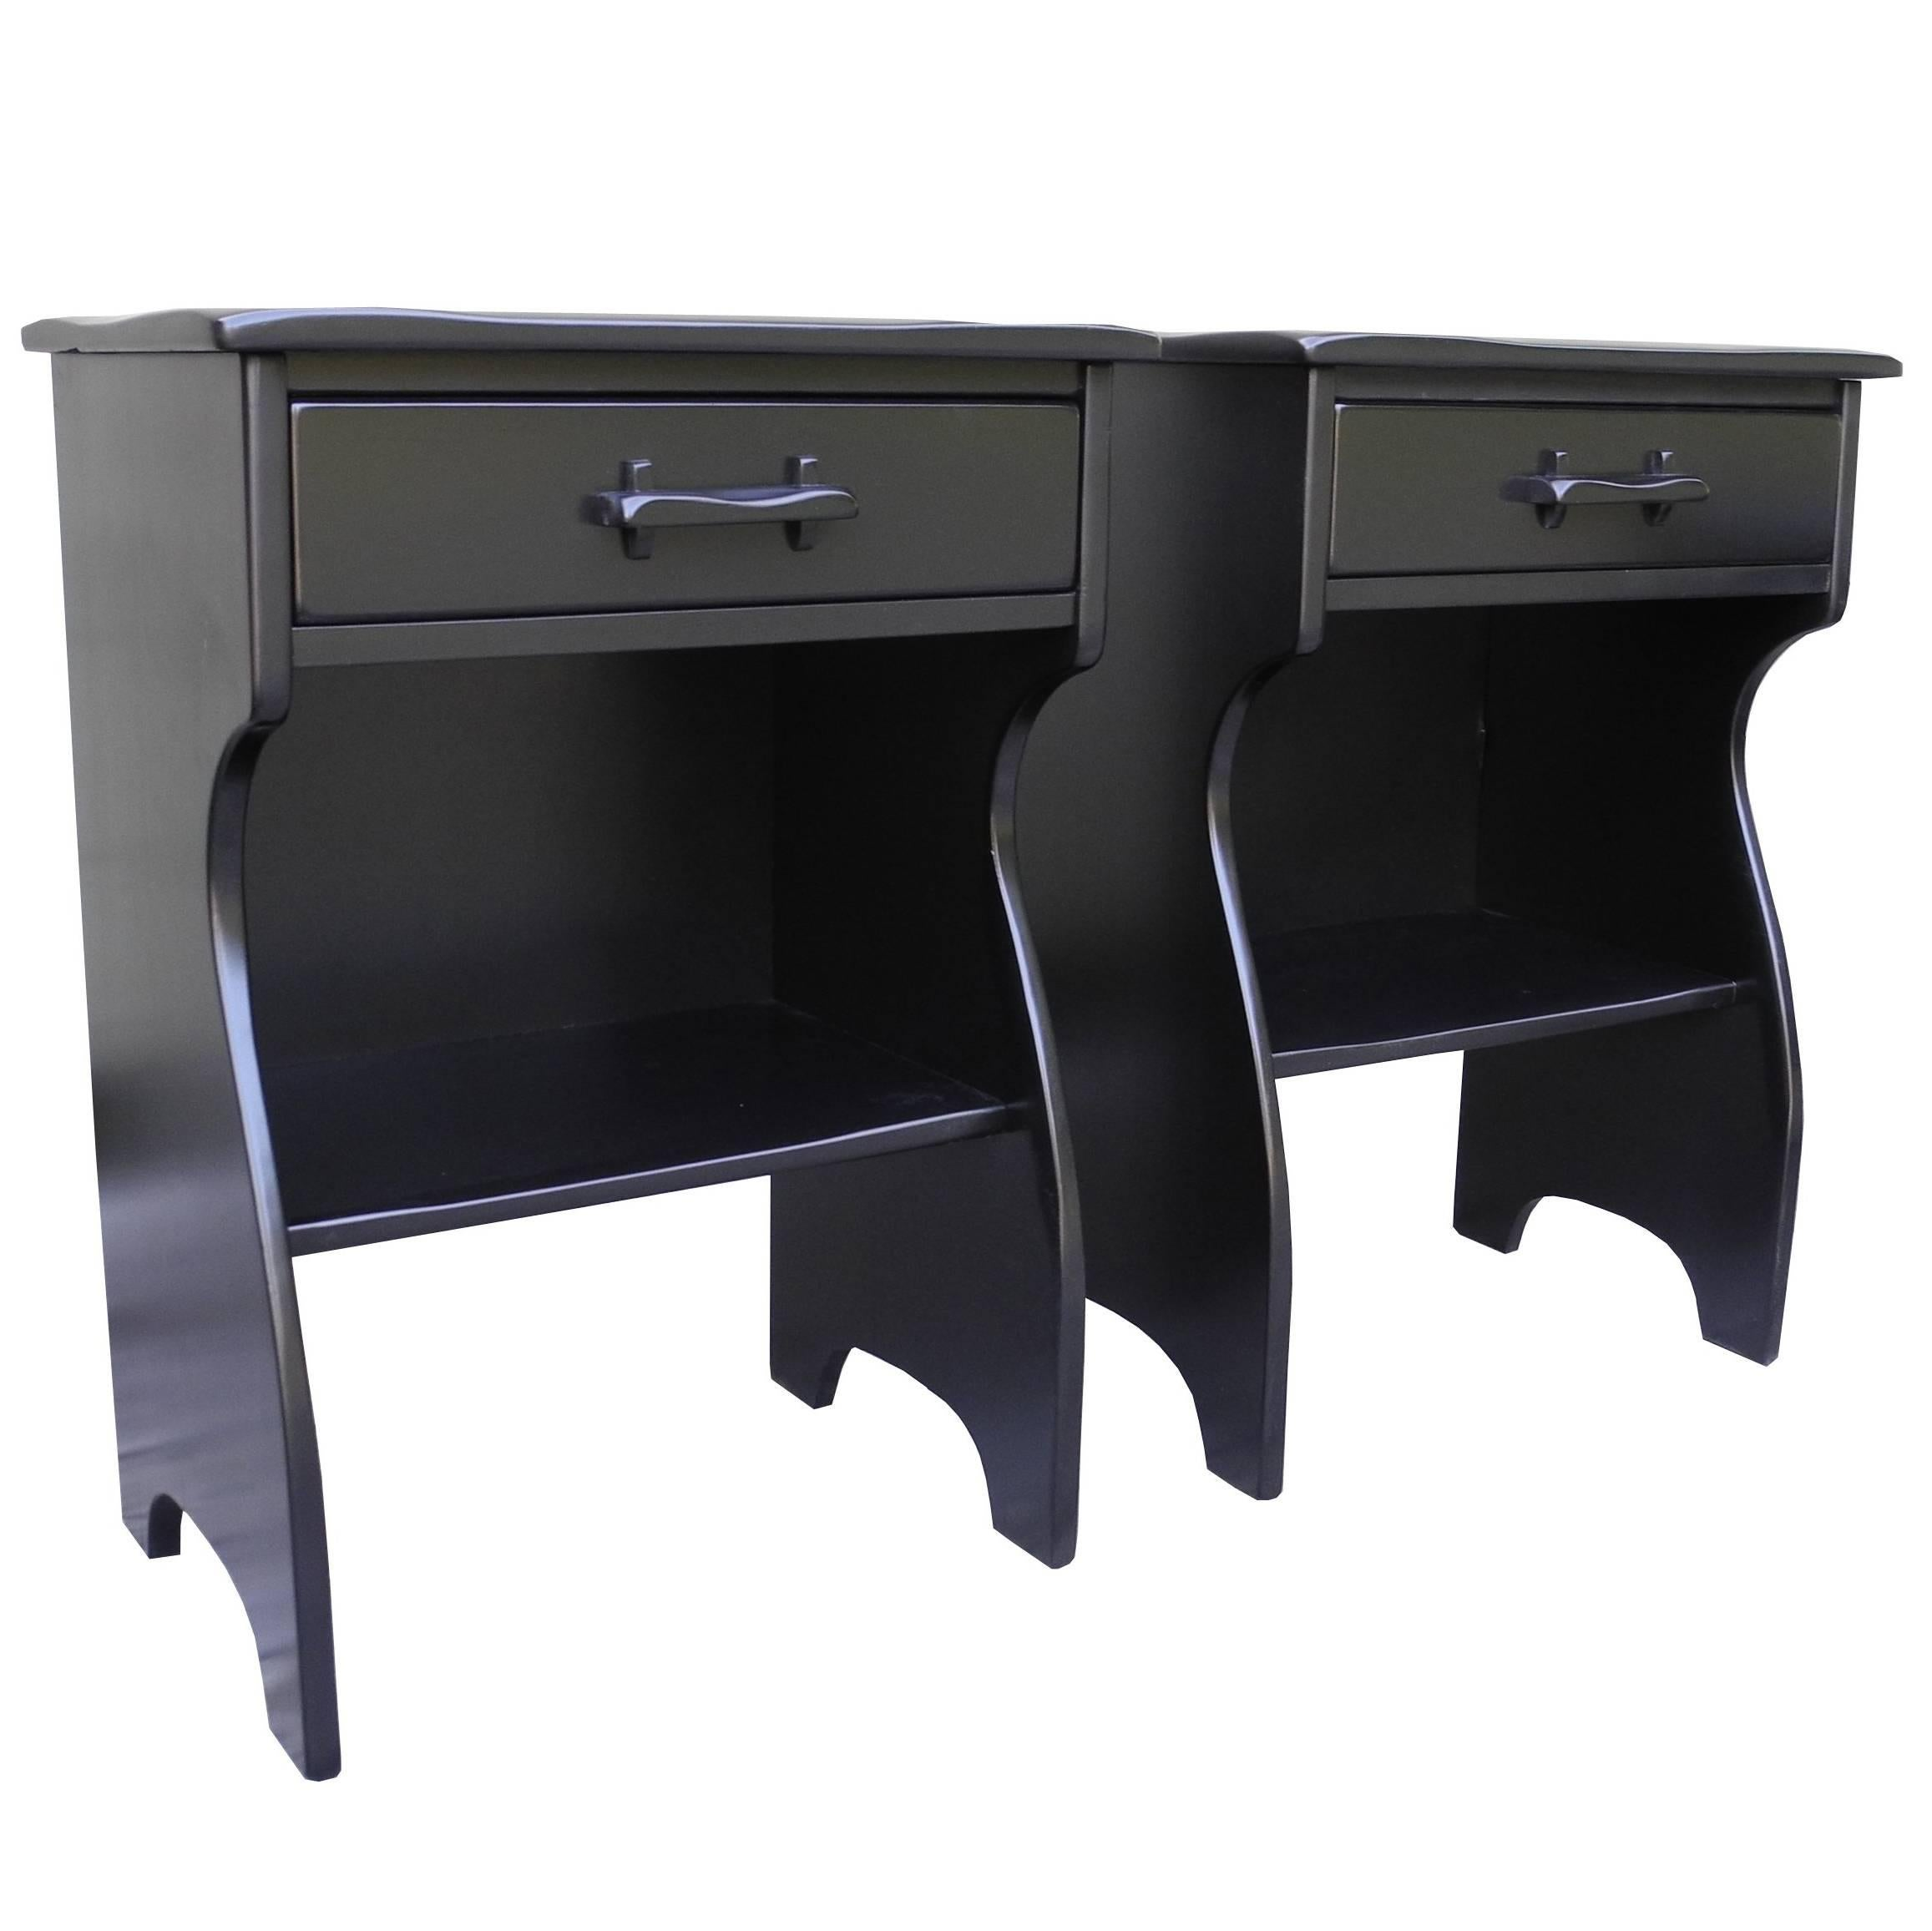 Mid Century Colonial Modern Maple Nightstands In Black By Cushman Furniture  For Sale